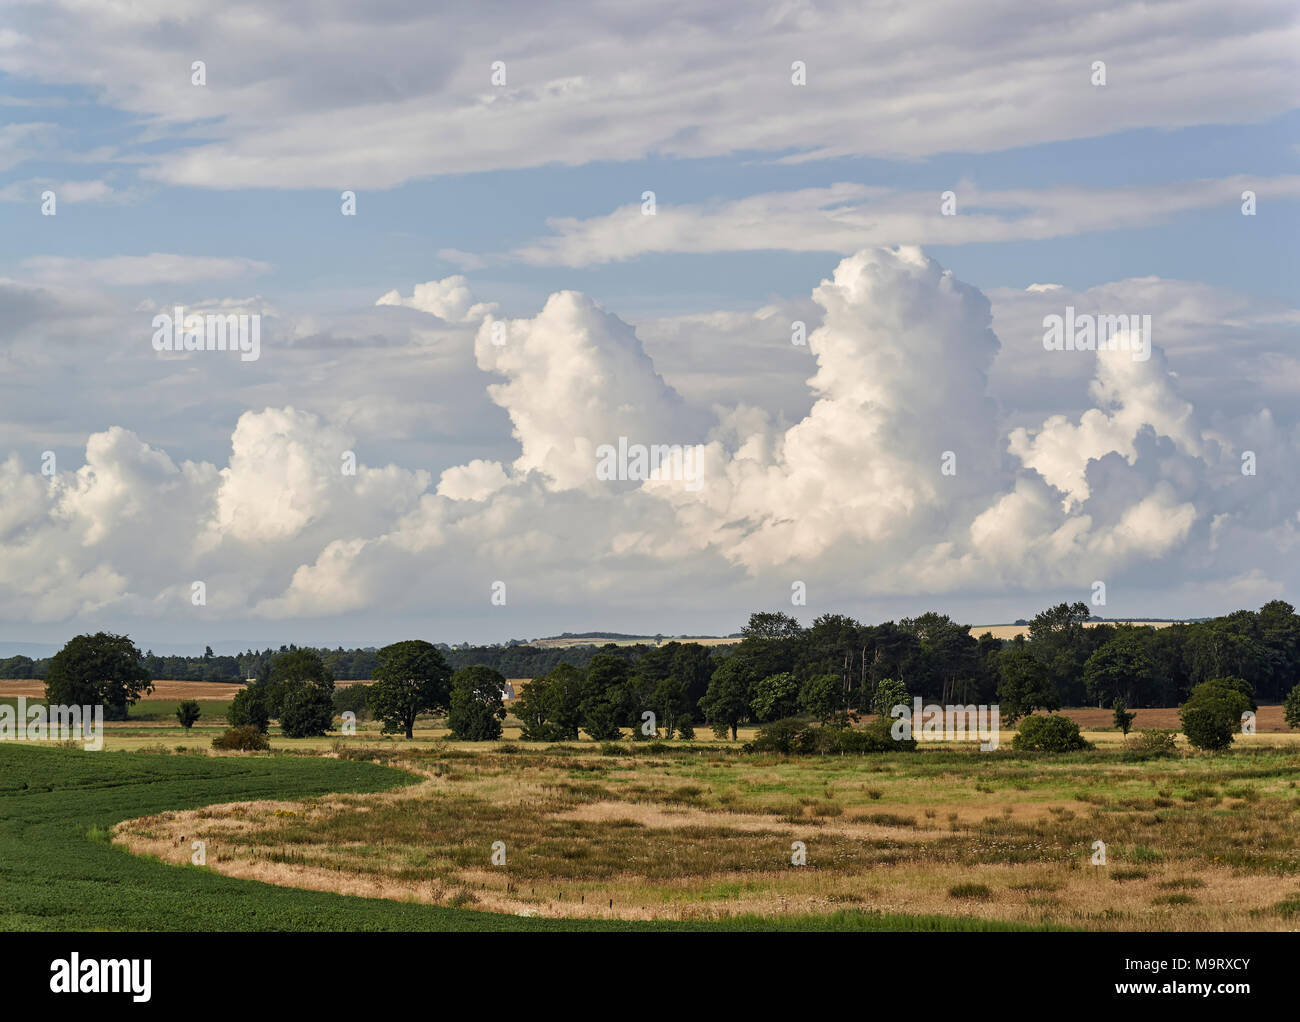 Cumulonimbus Clouds beginning to form over the Angus Countryside at Colliston, near Arbroath, Scotland. - Stock Image